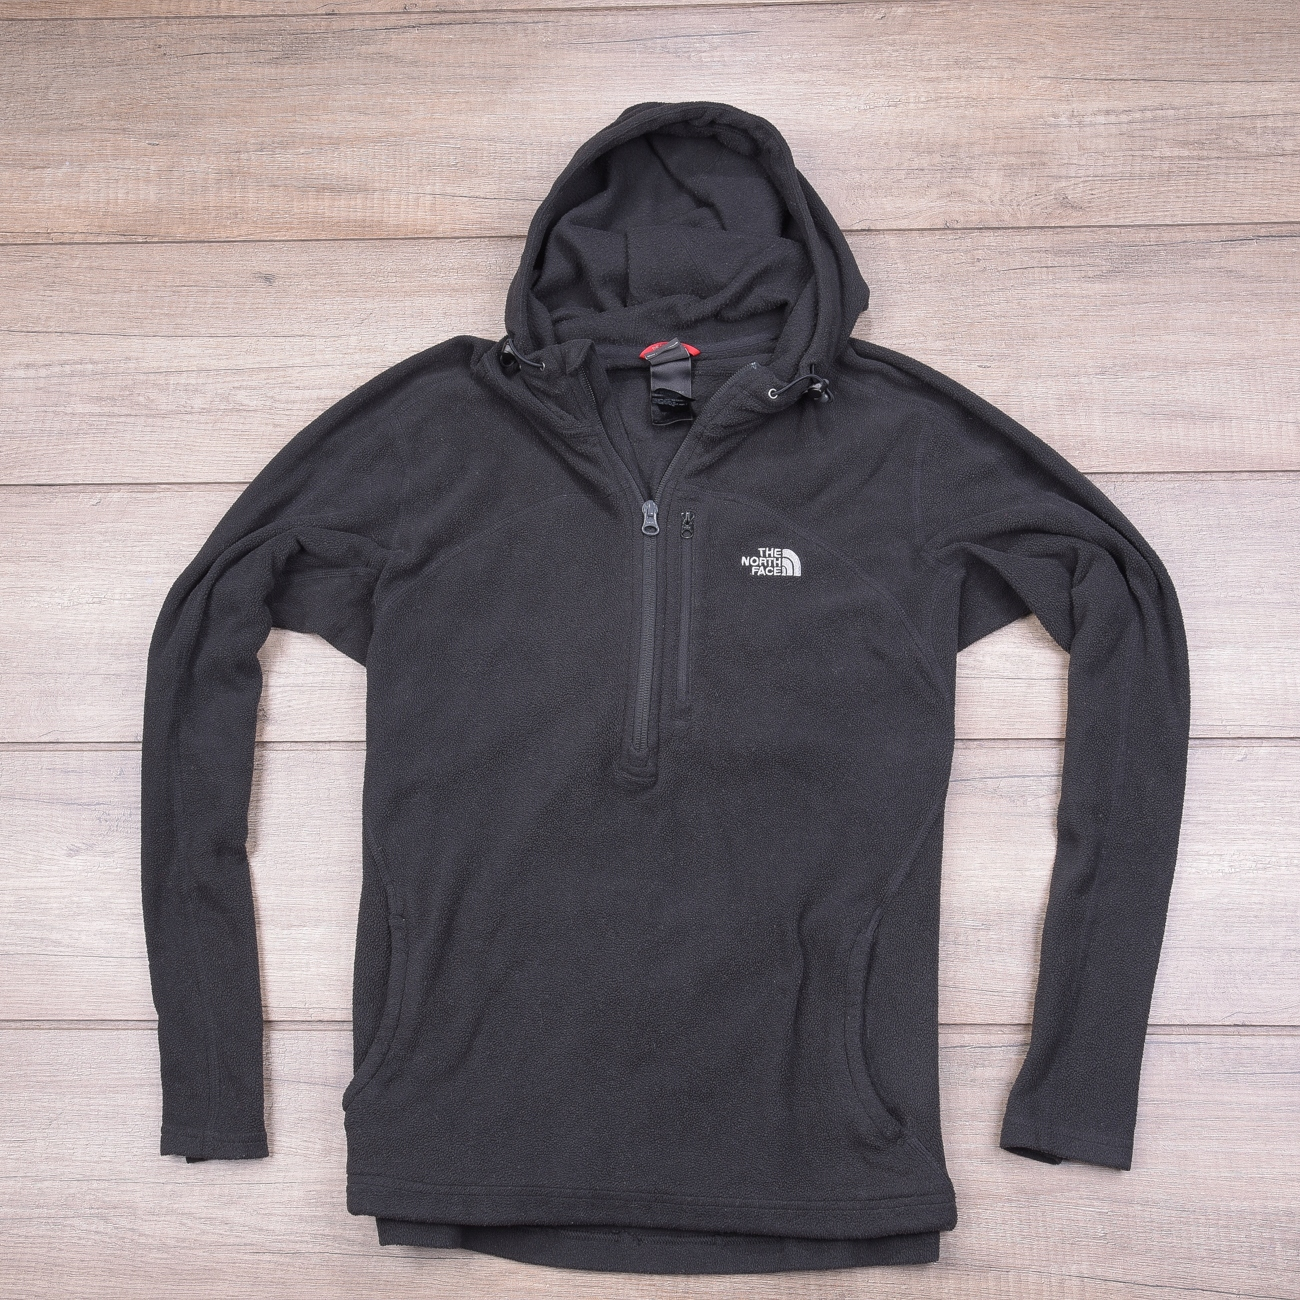 THE NORTH FACE POLAR EXPLORING MOUNTAIN Z KAP *XL*